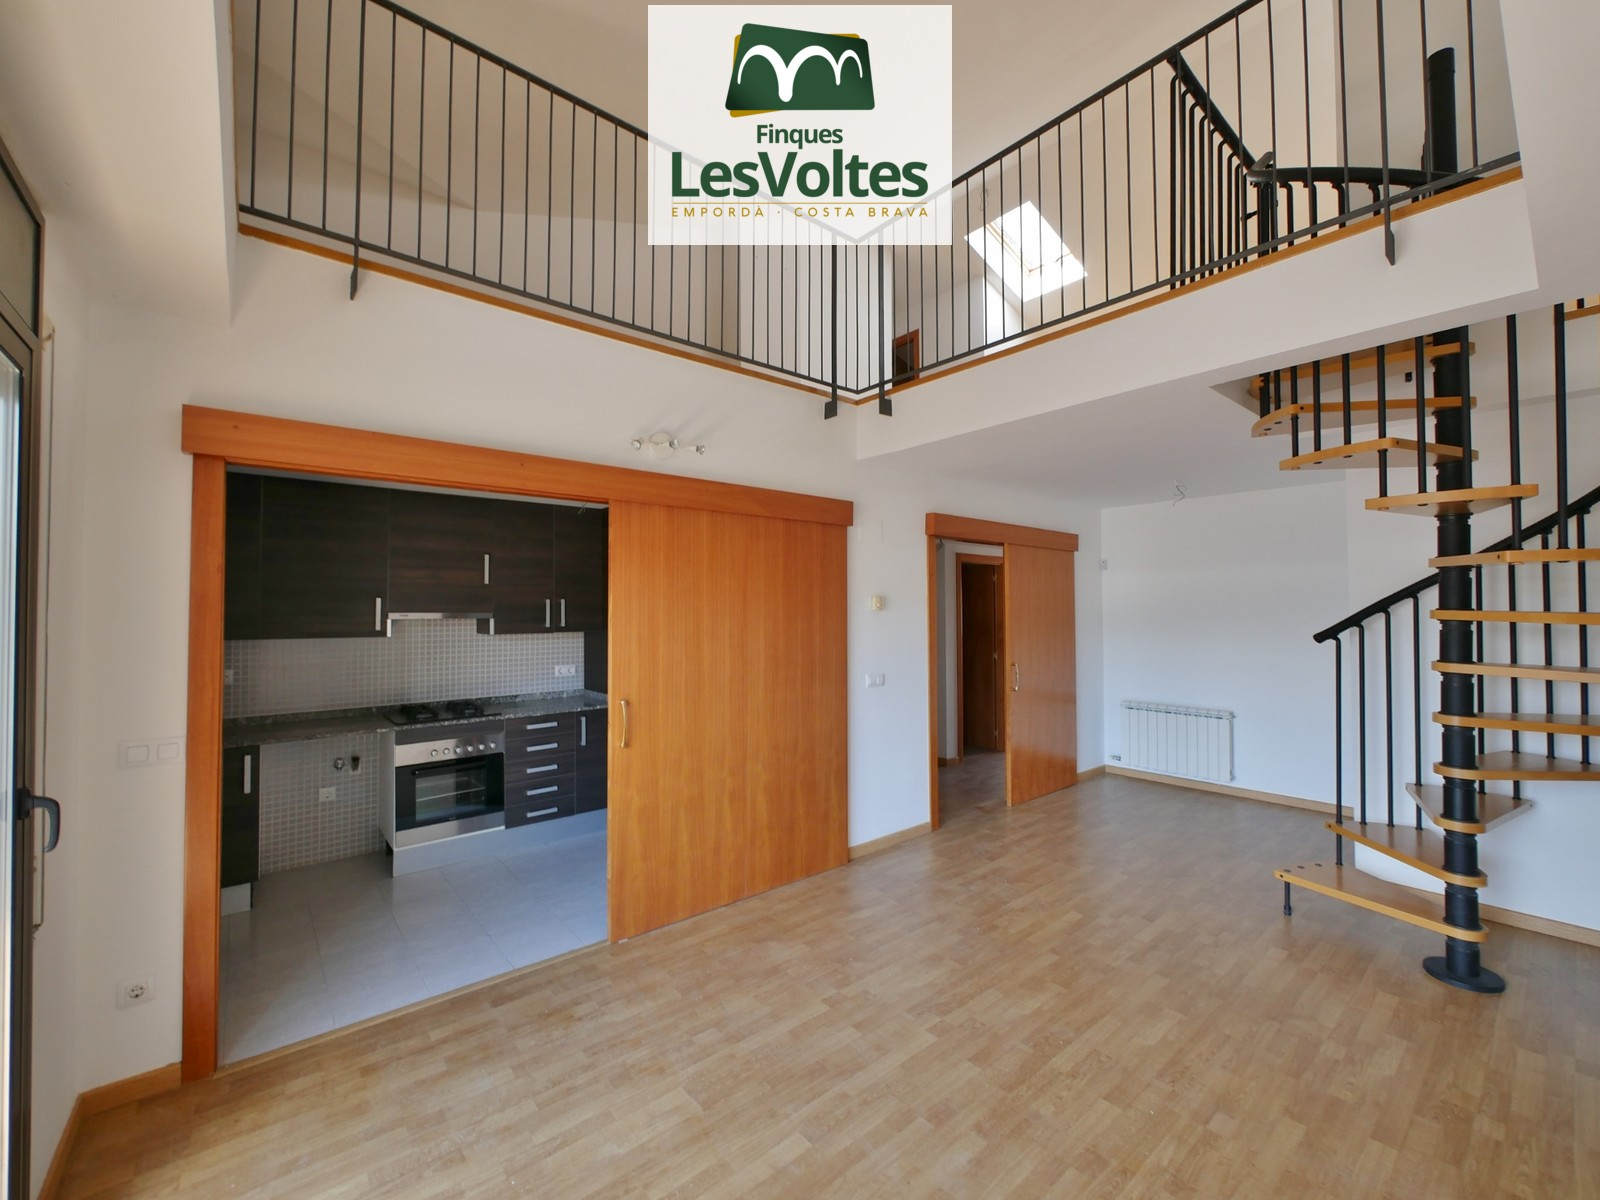 IMPRESSIVE DUPLEX OF 130 M2 WITH ELEVATOR, BALCONY AND ACCESS TO COMMUNITY POOL FOR SALE IN LA BISBAL D'EMPORDÀ.